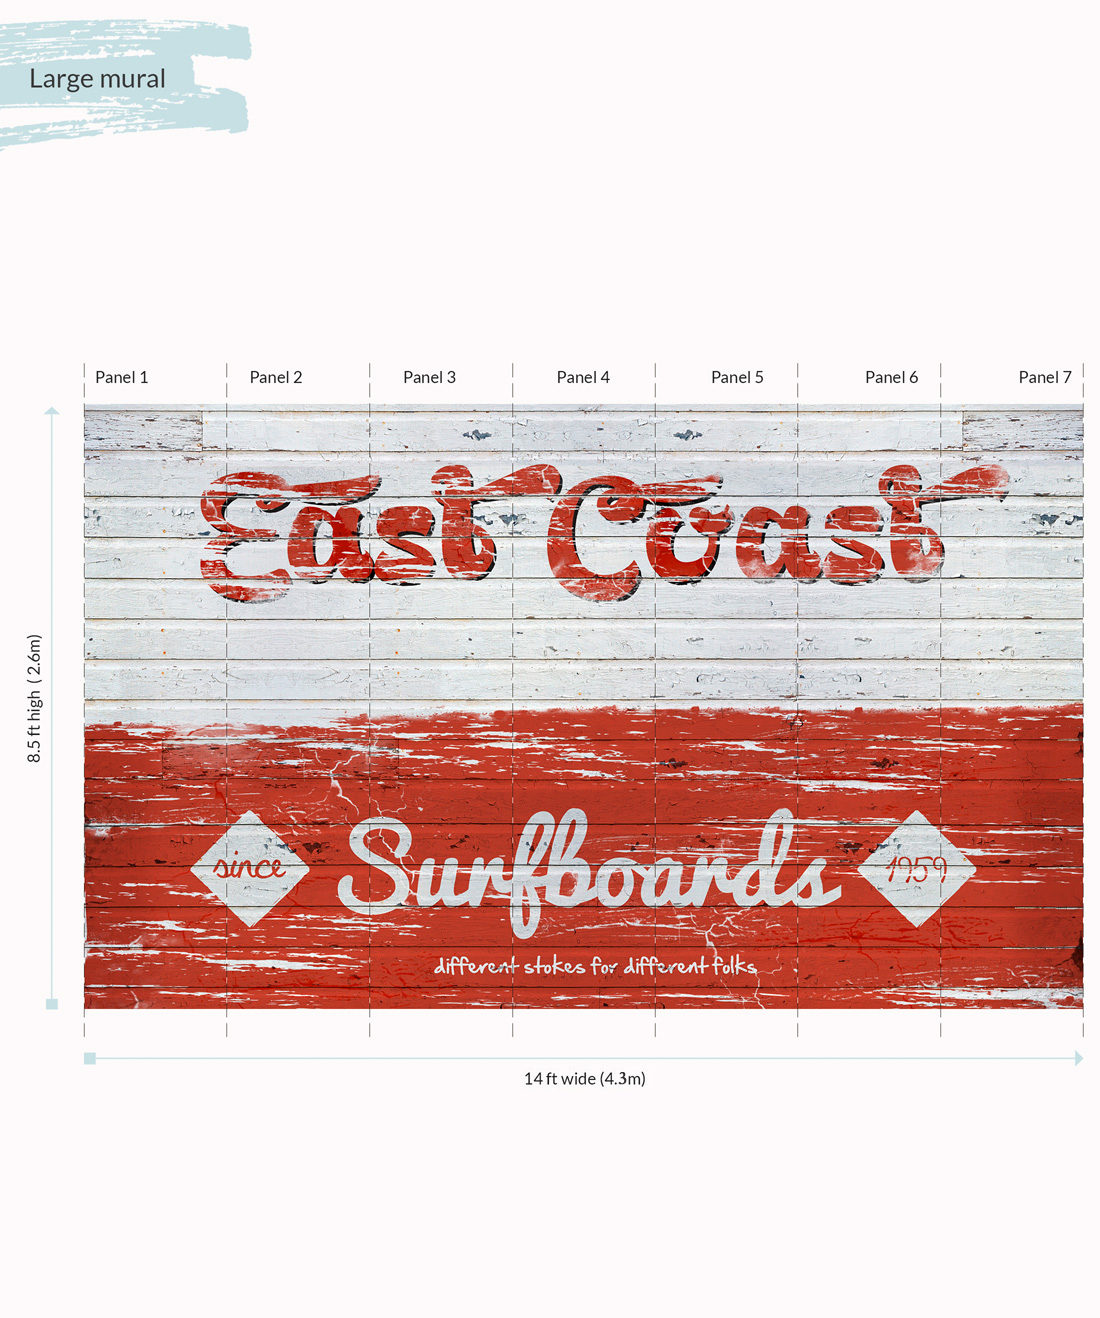 East Coast Surfboards Wall Mural - Large